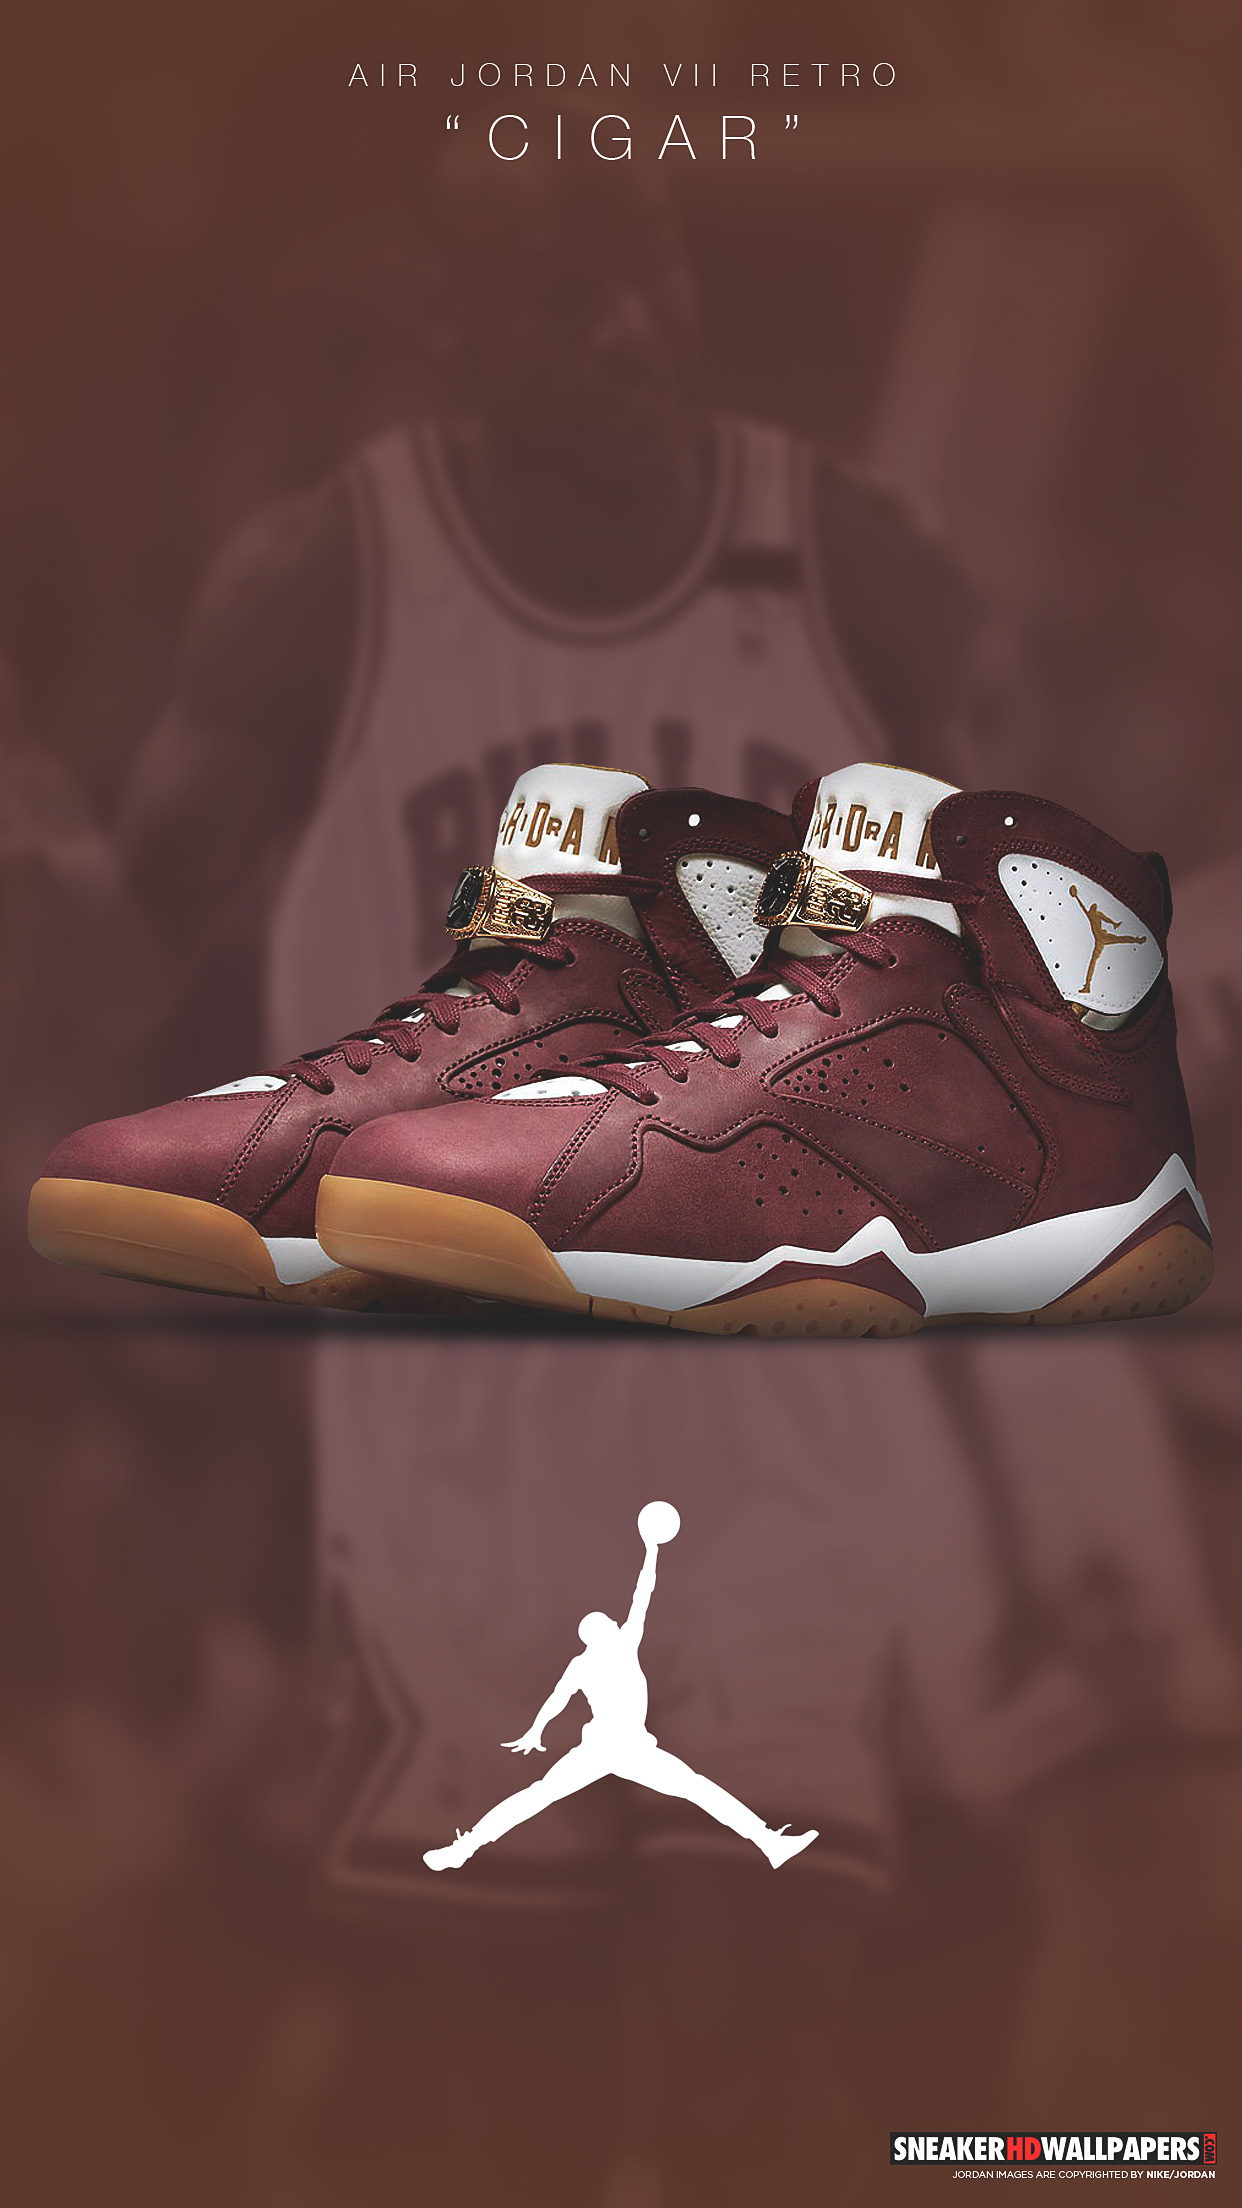 Sneaker Iphone Wallpaper Posted By Samantha Peltier